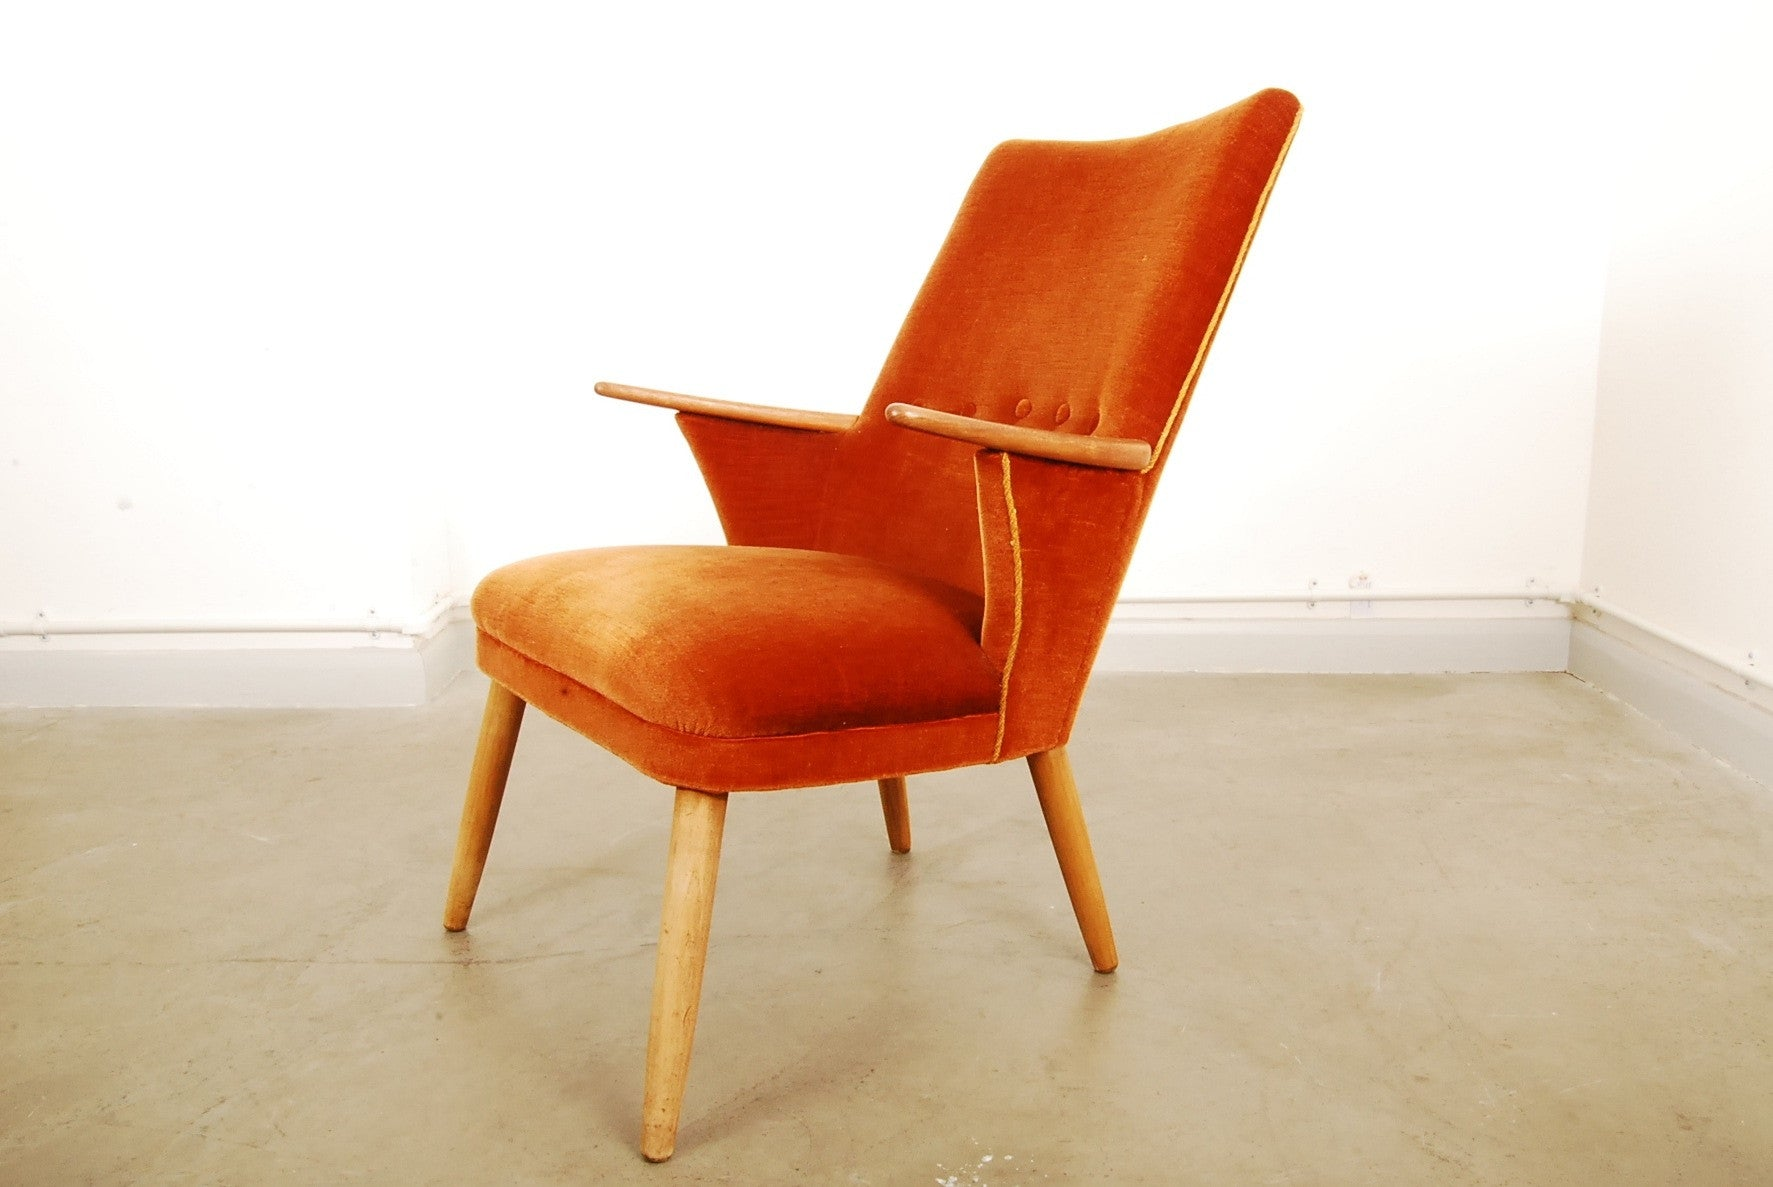 1950s occasional chair with teak arms